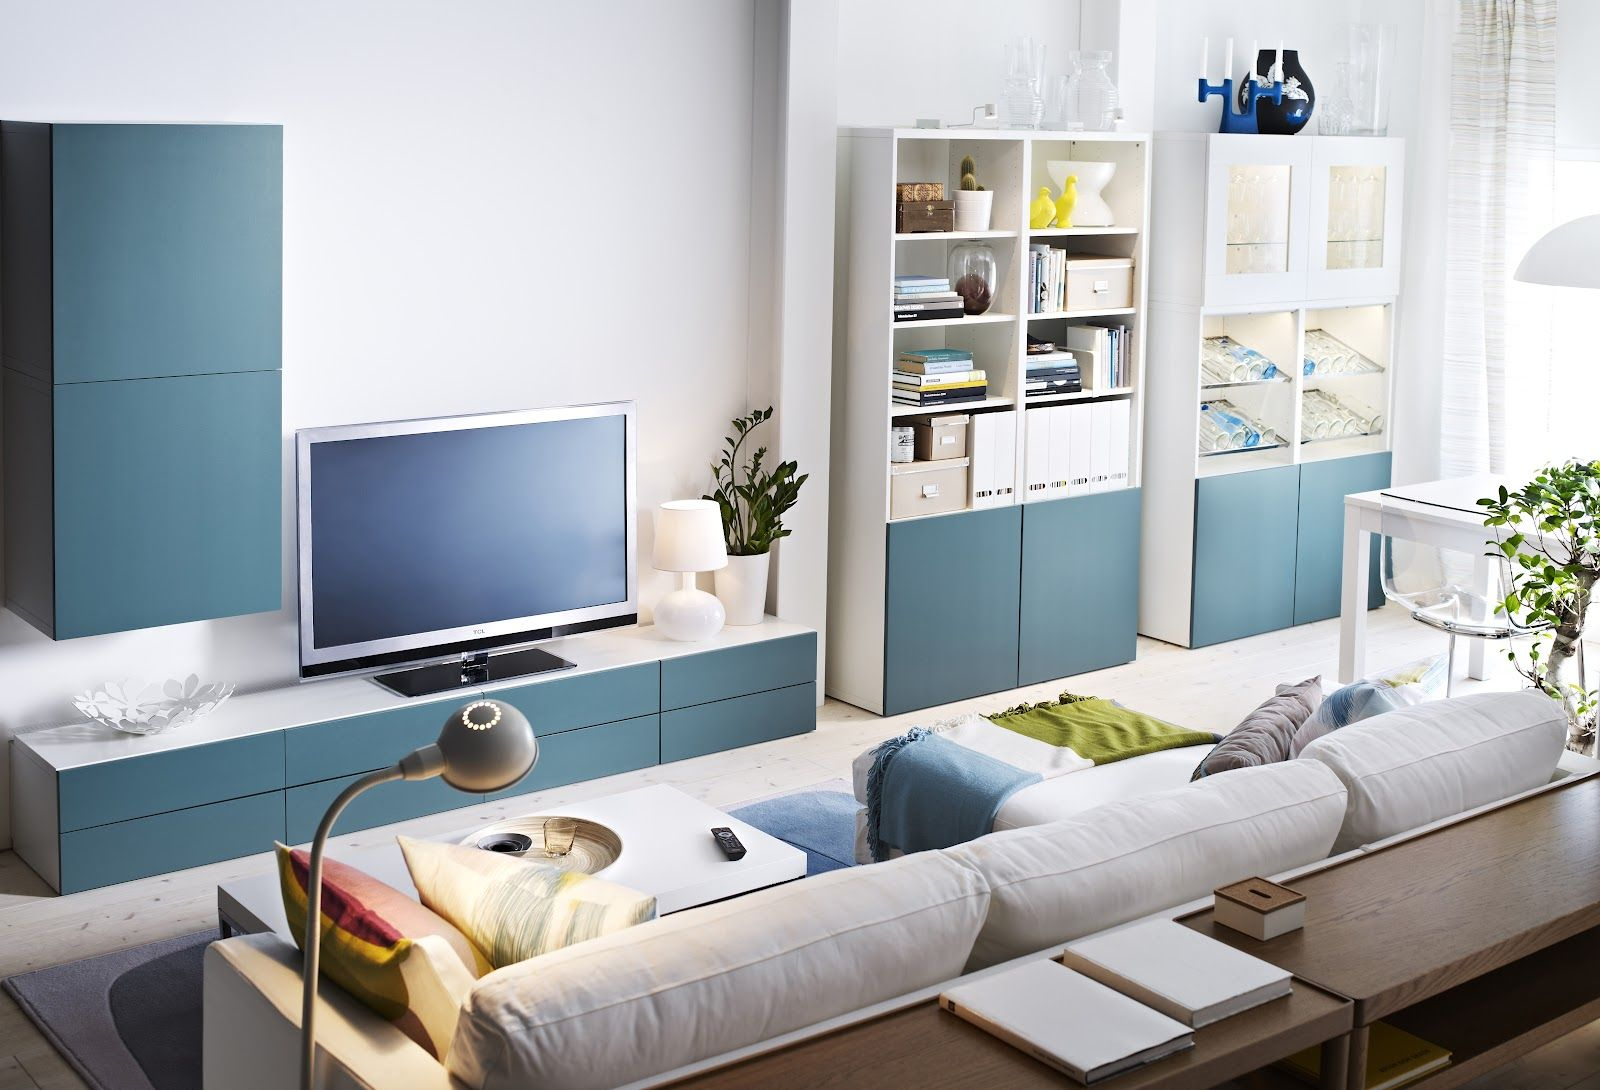 IKEA 2013 Catalog Preview - Skimbaco Lifestyle online magazine | Skimbaco Lifestyle | online magazine